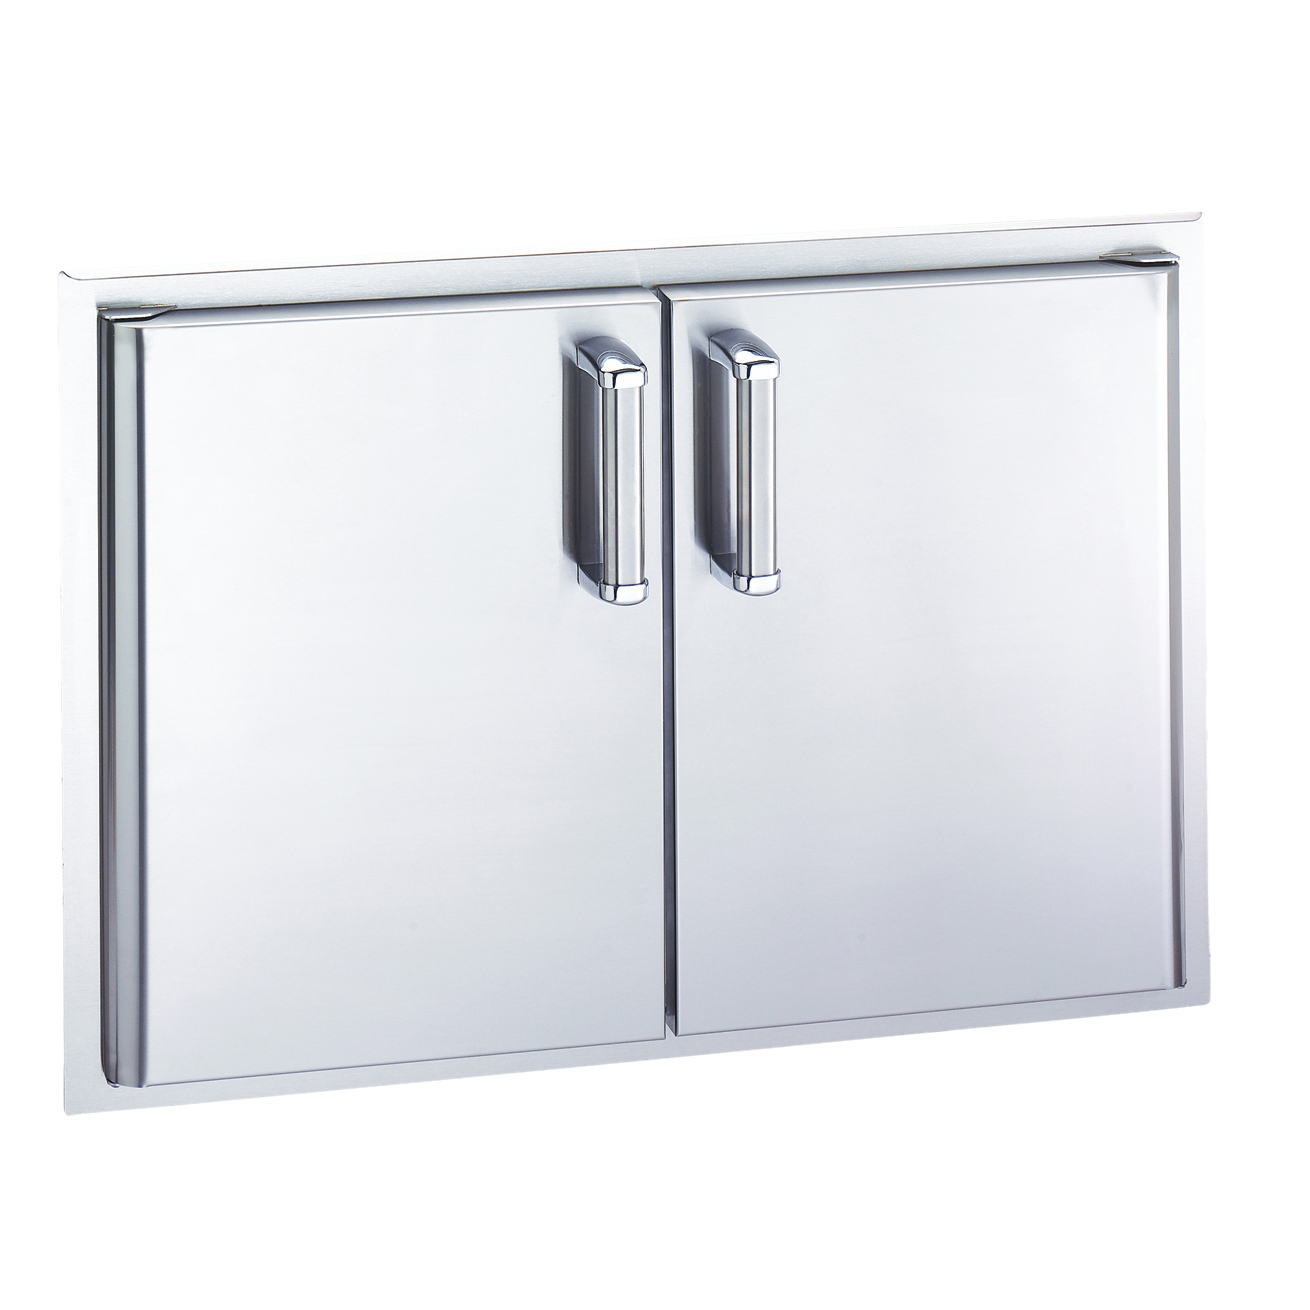 Access Door For Metal Doors : Fire magic inch stainless steel double access door